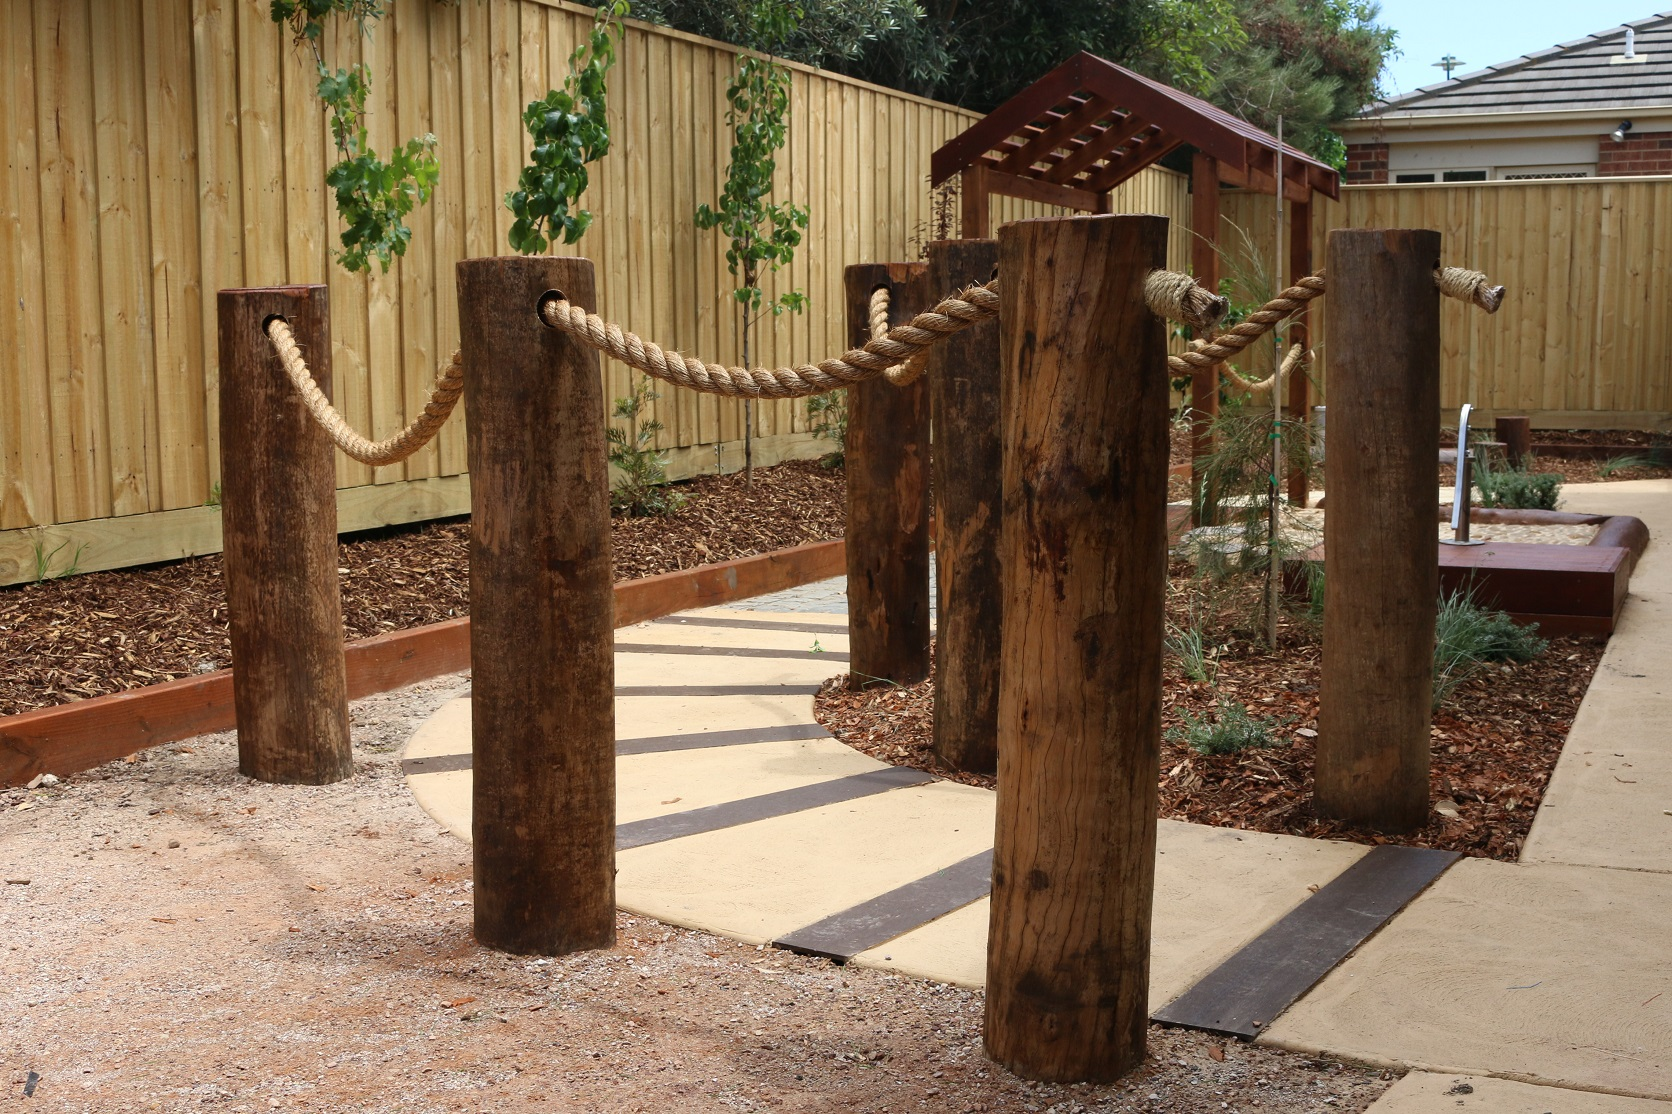 logs sleepers in path - newcomb